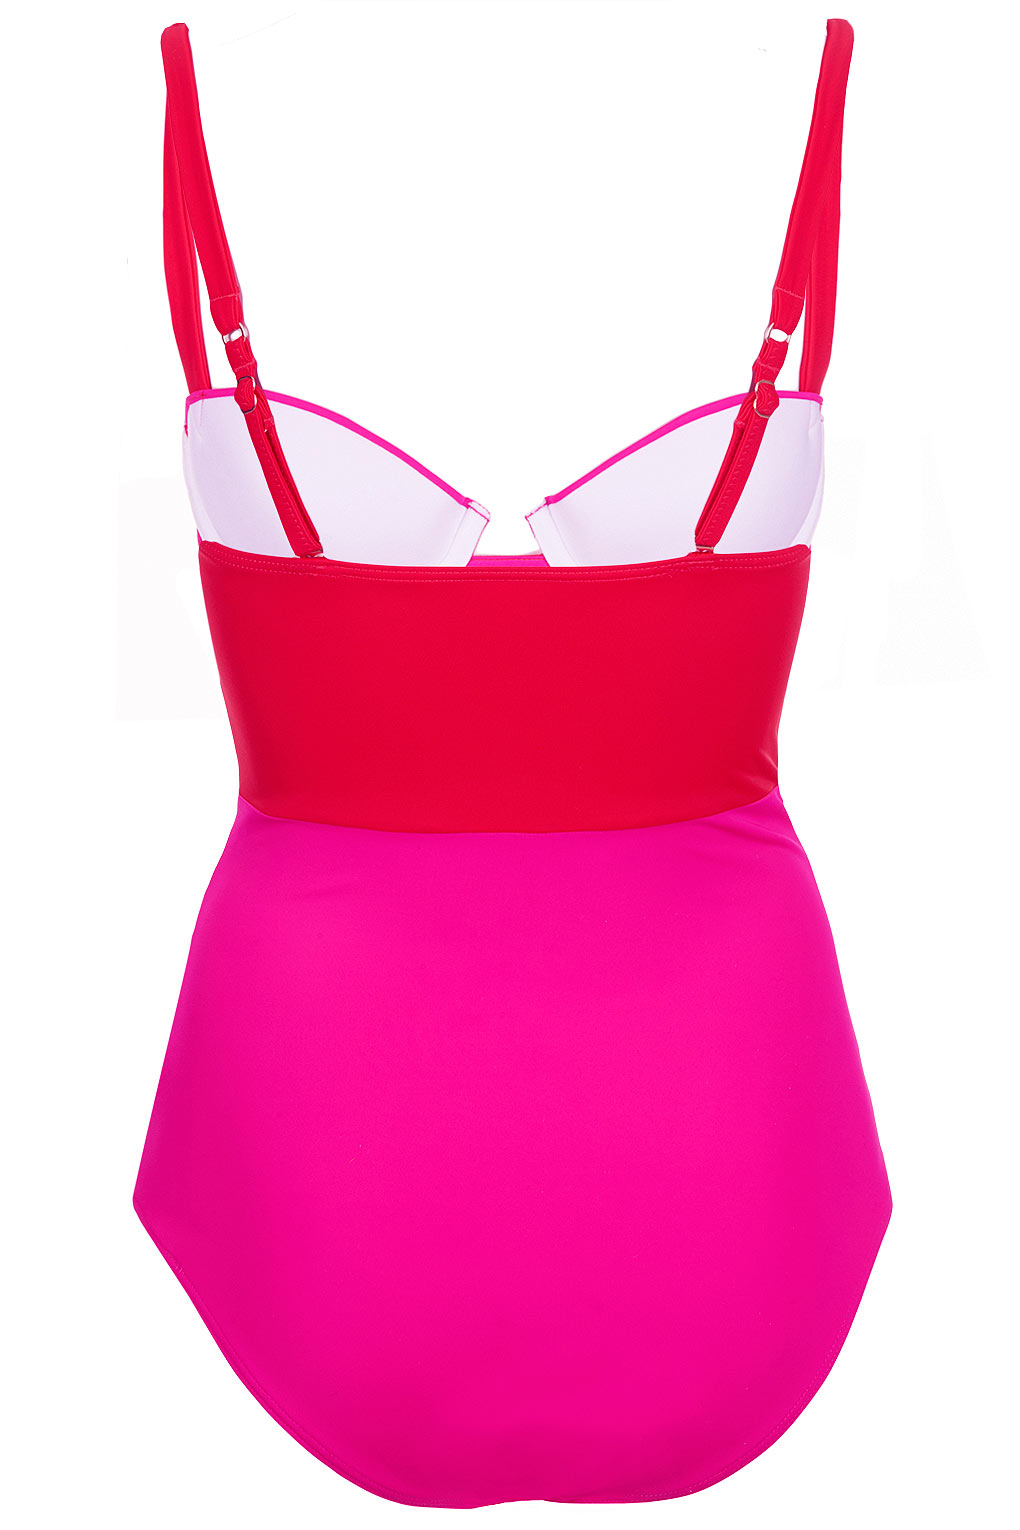 f94e800d5bdcdc TOPSHOP Red and Pink Colour Block Swimsuit in Pink - Lyst